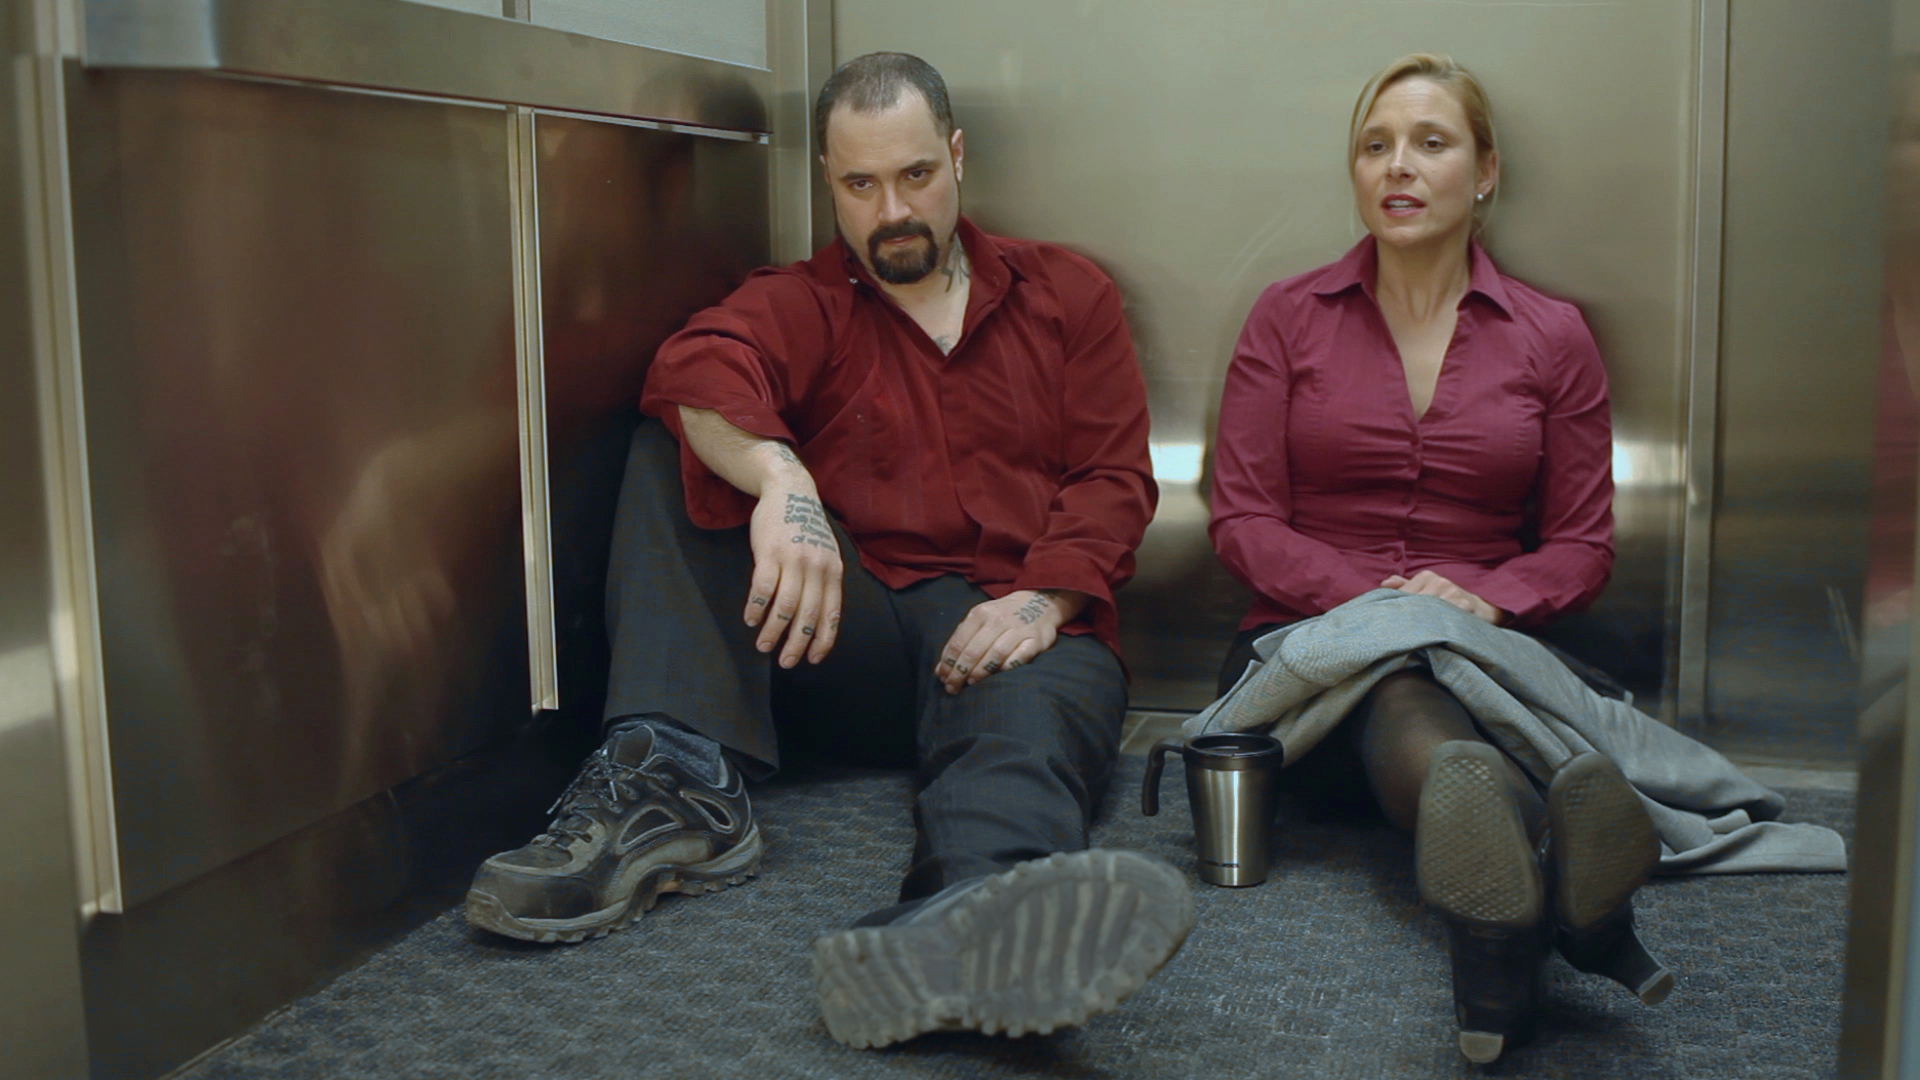 Vincent Valentino & Jason Marshall Sam and Diane   2 people who despise one another get stuck in an elevator.